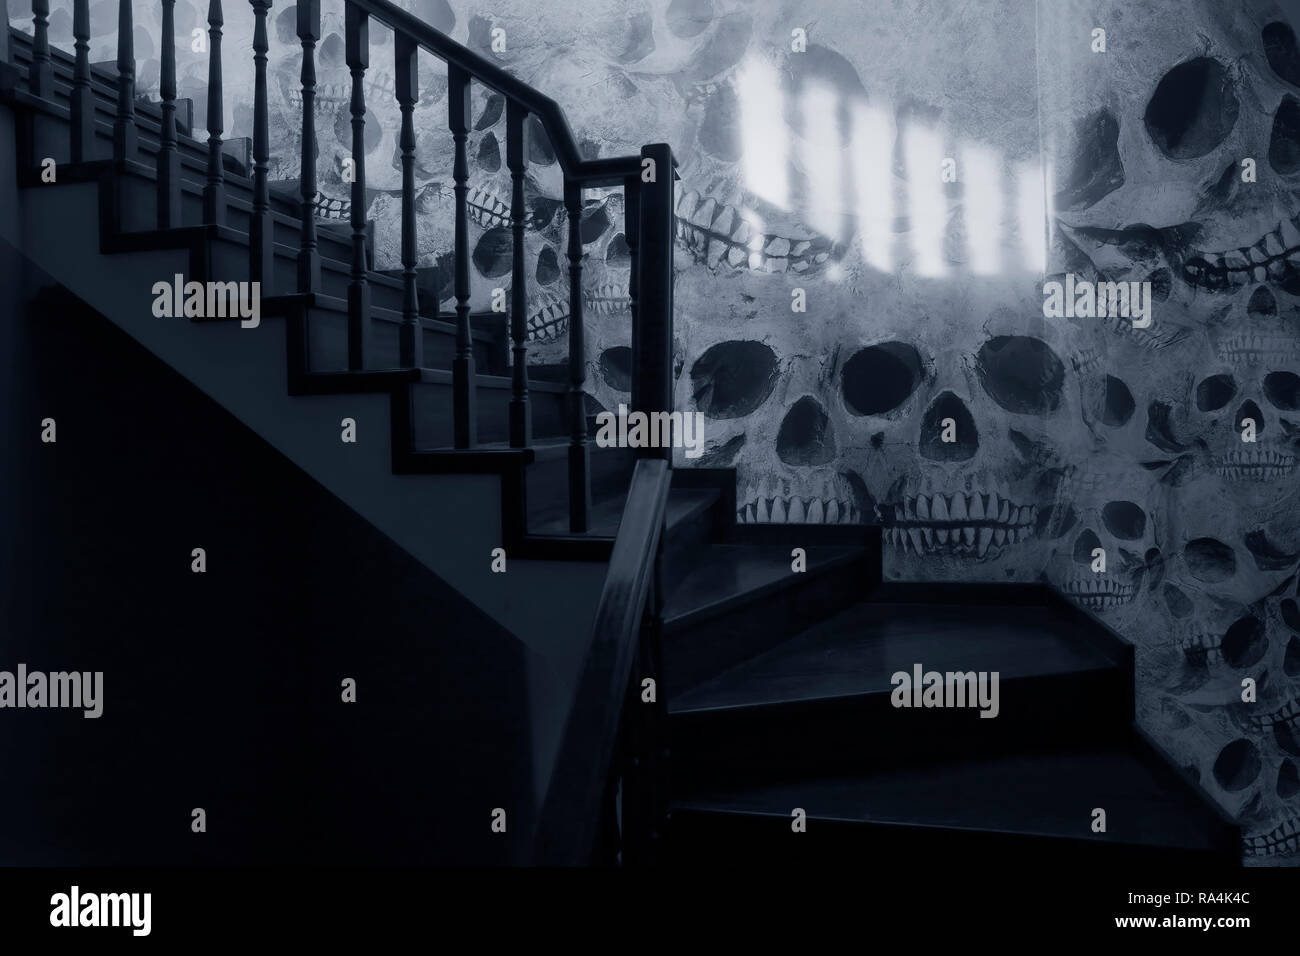 Frightening and surreal stairs to the loft: Phot composition with skulls on the wall. - Stock Image